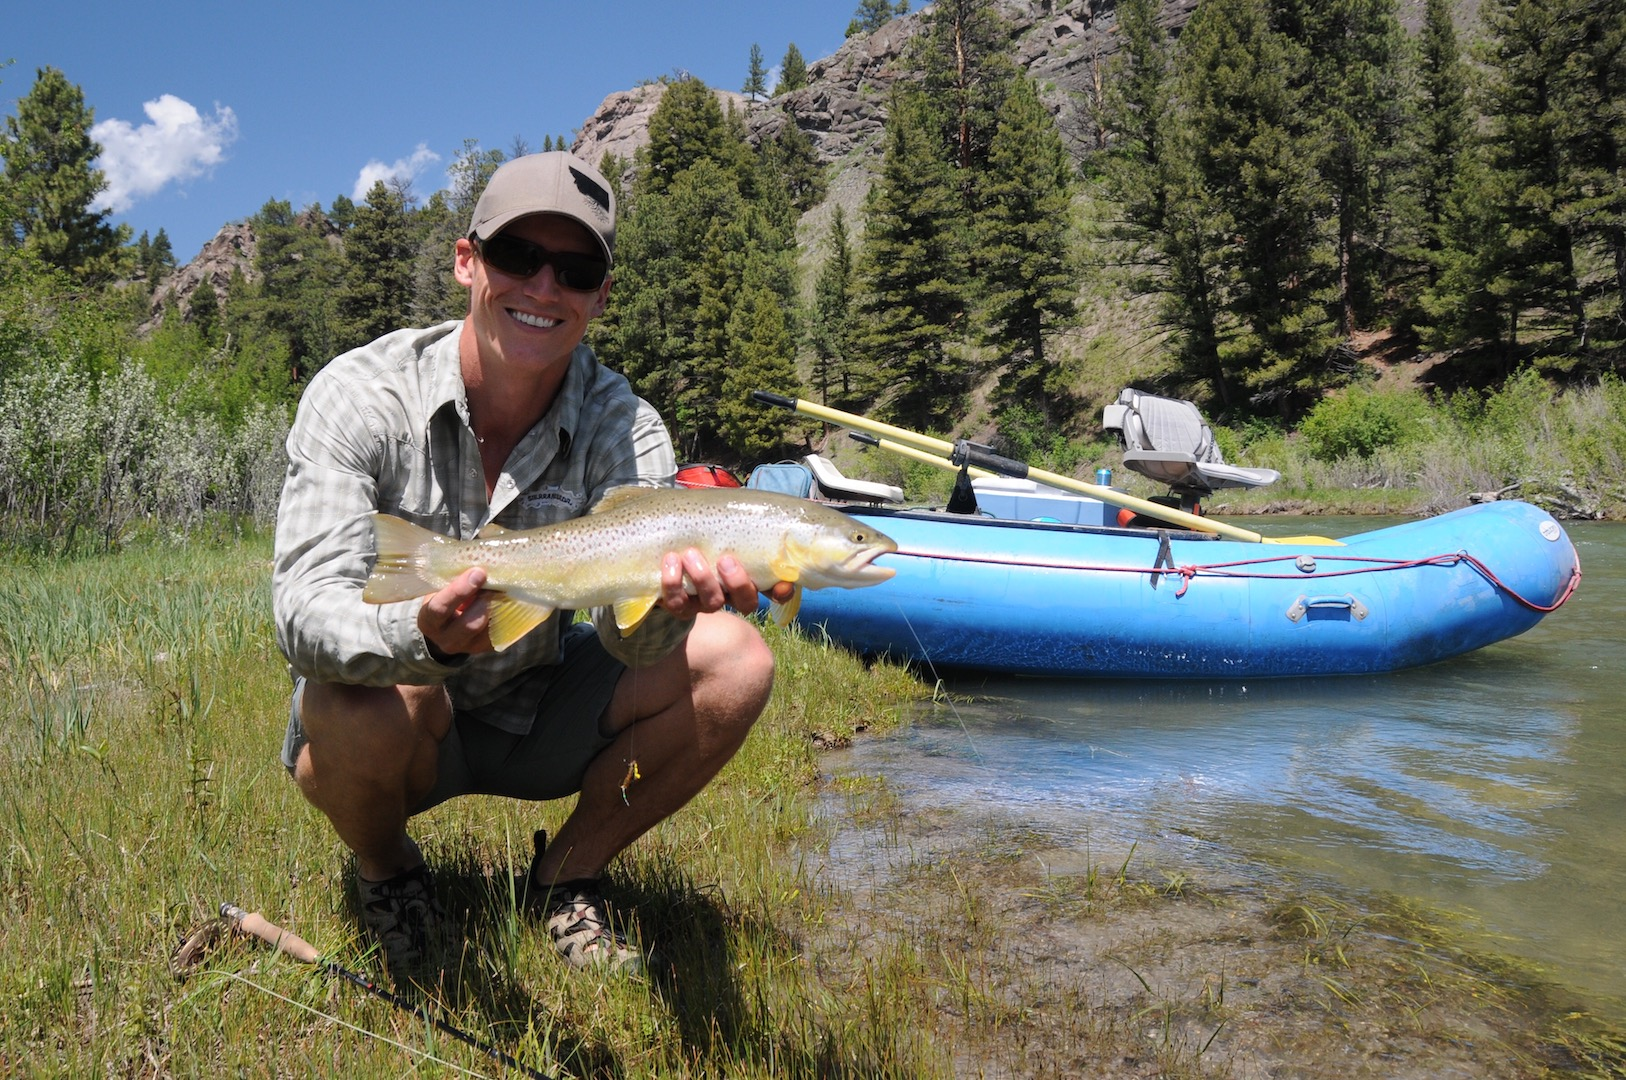 Dan McFarland, DDS with a fish in his hands and mountains in the background